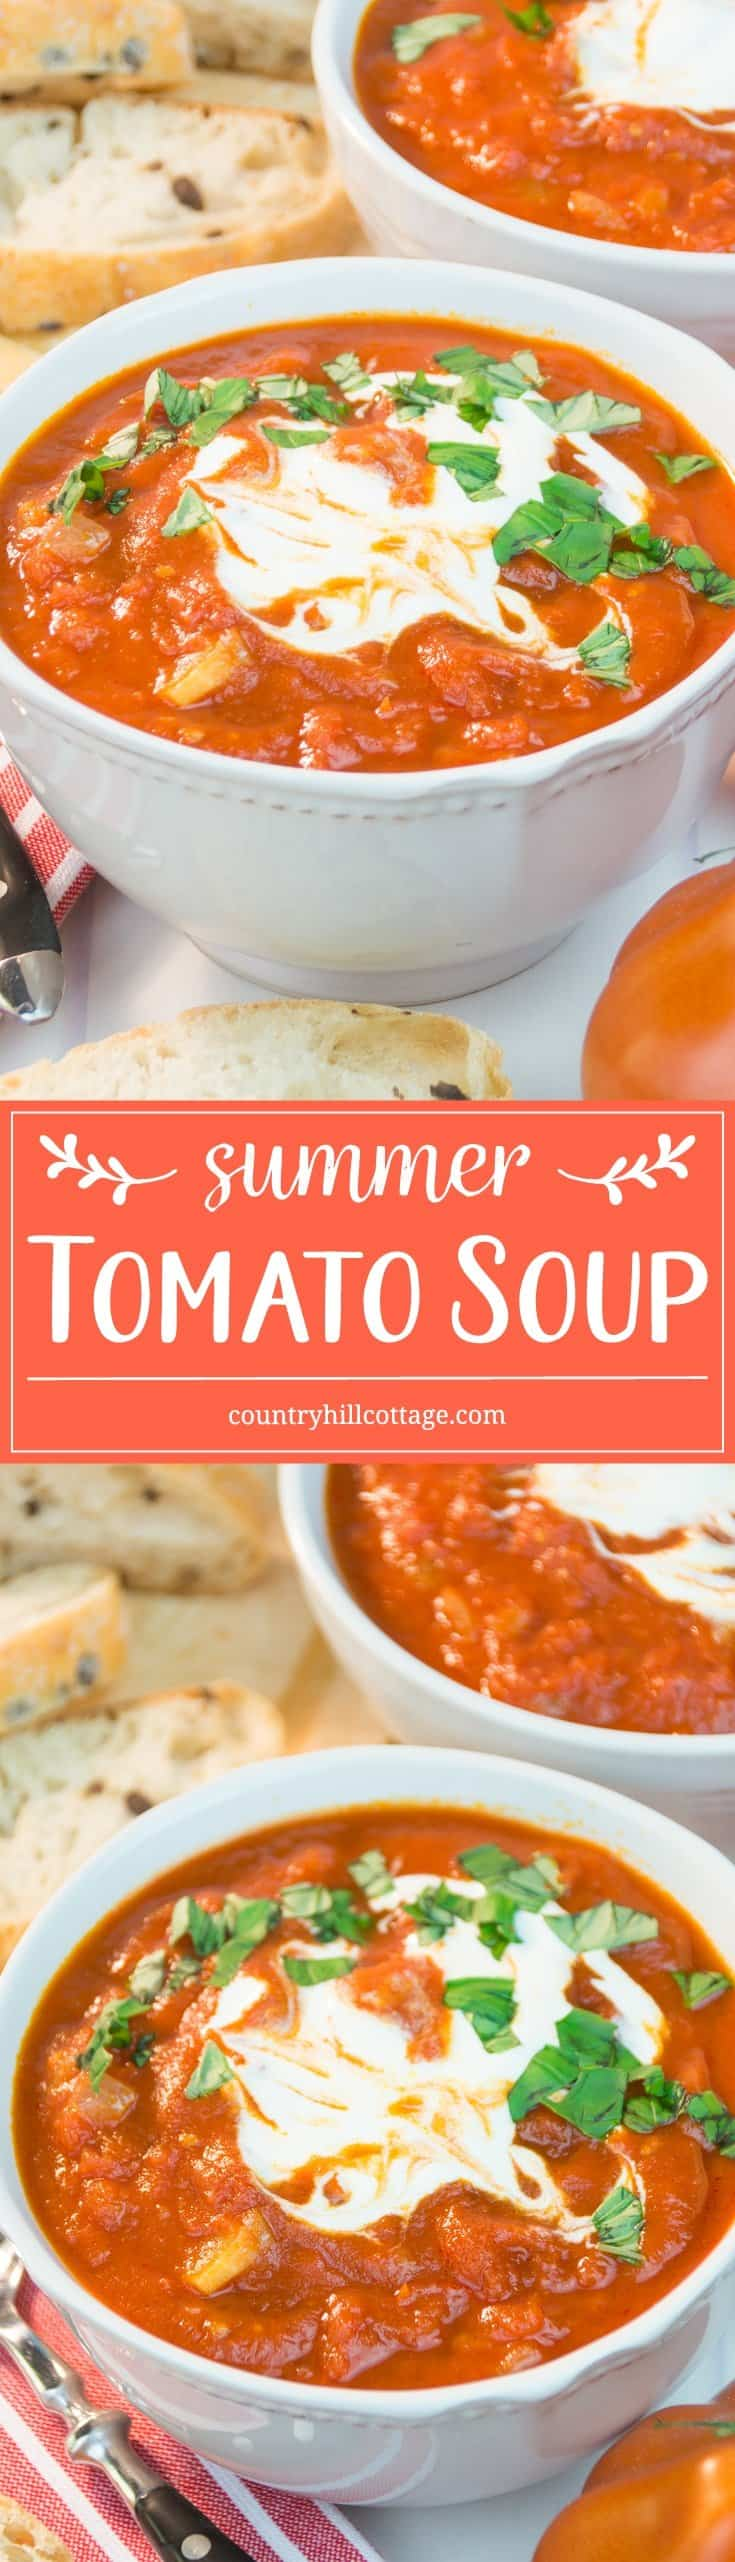 Tomatoes truly are the star in our simple yet scrumptious tomato soup! We only roughly pureed the soup and left a quite a few tomato chunks for a rustic touch your family and guests will appreciate. A dollop of sour cream and a sprinkle of fresh basil round out the tomato soup in the best way! #tomatosoup #tomato #soup| countryhillcottage.com